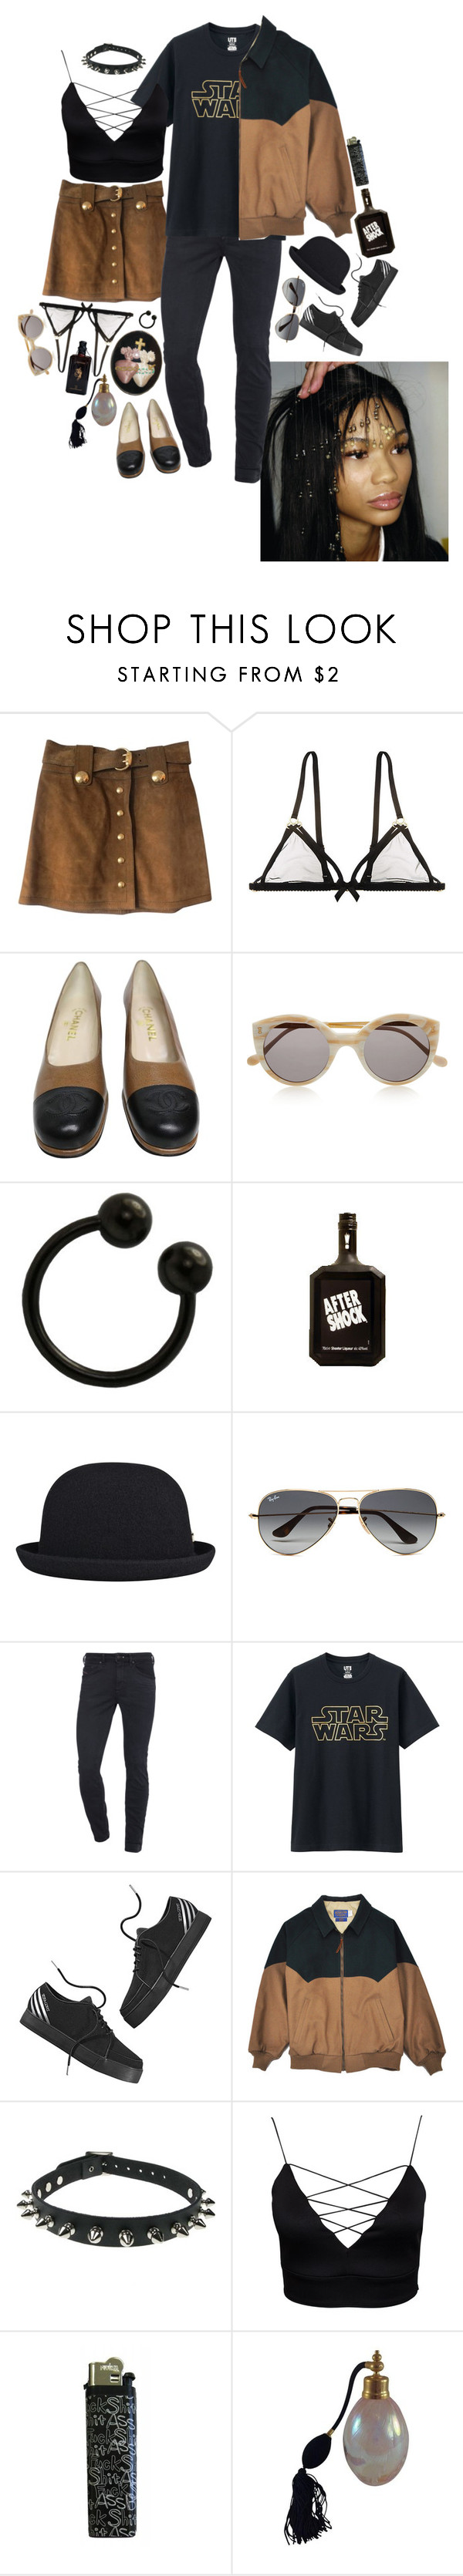 """""""Untitled #564"""" by iamcharlotte ❤ liked on Polyvore featuring Gucci, Bordelle, Chanel, Illesteva, kangol, Ray-Ban, Diesel, Uniqlo, adidas NEO and Kiki de Montparnasse"""